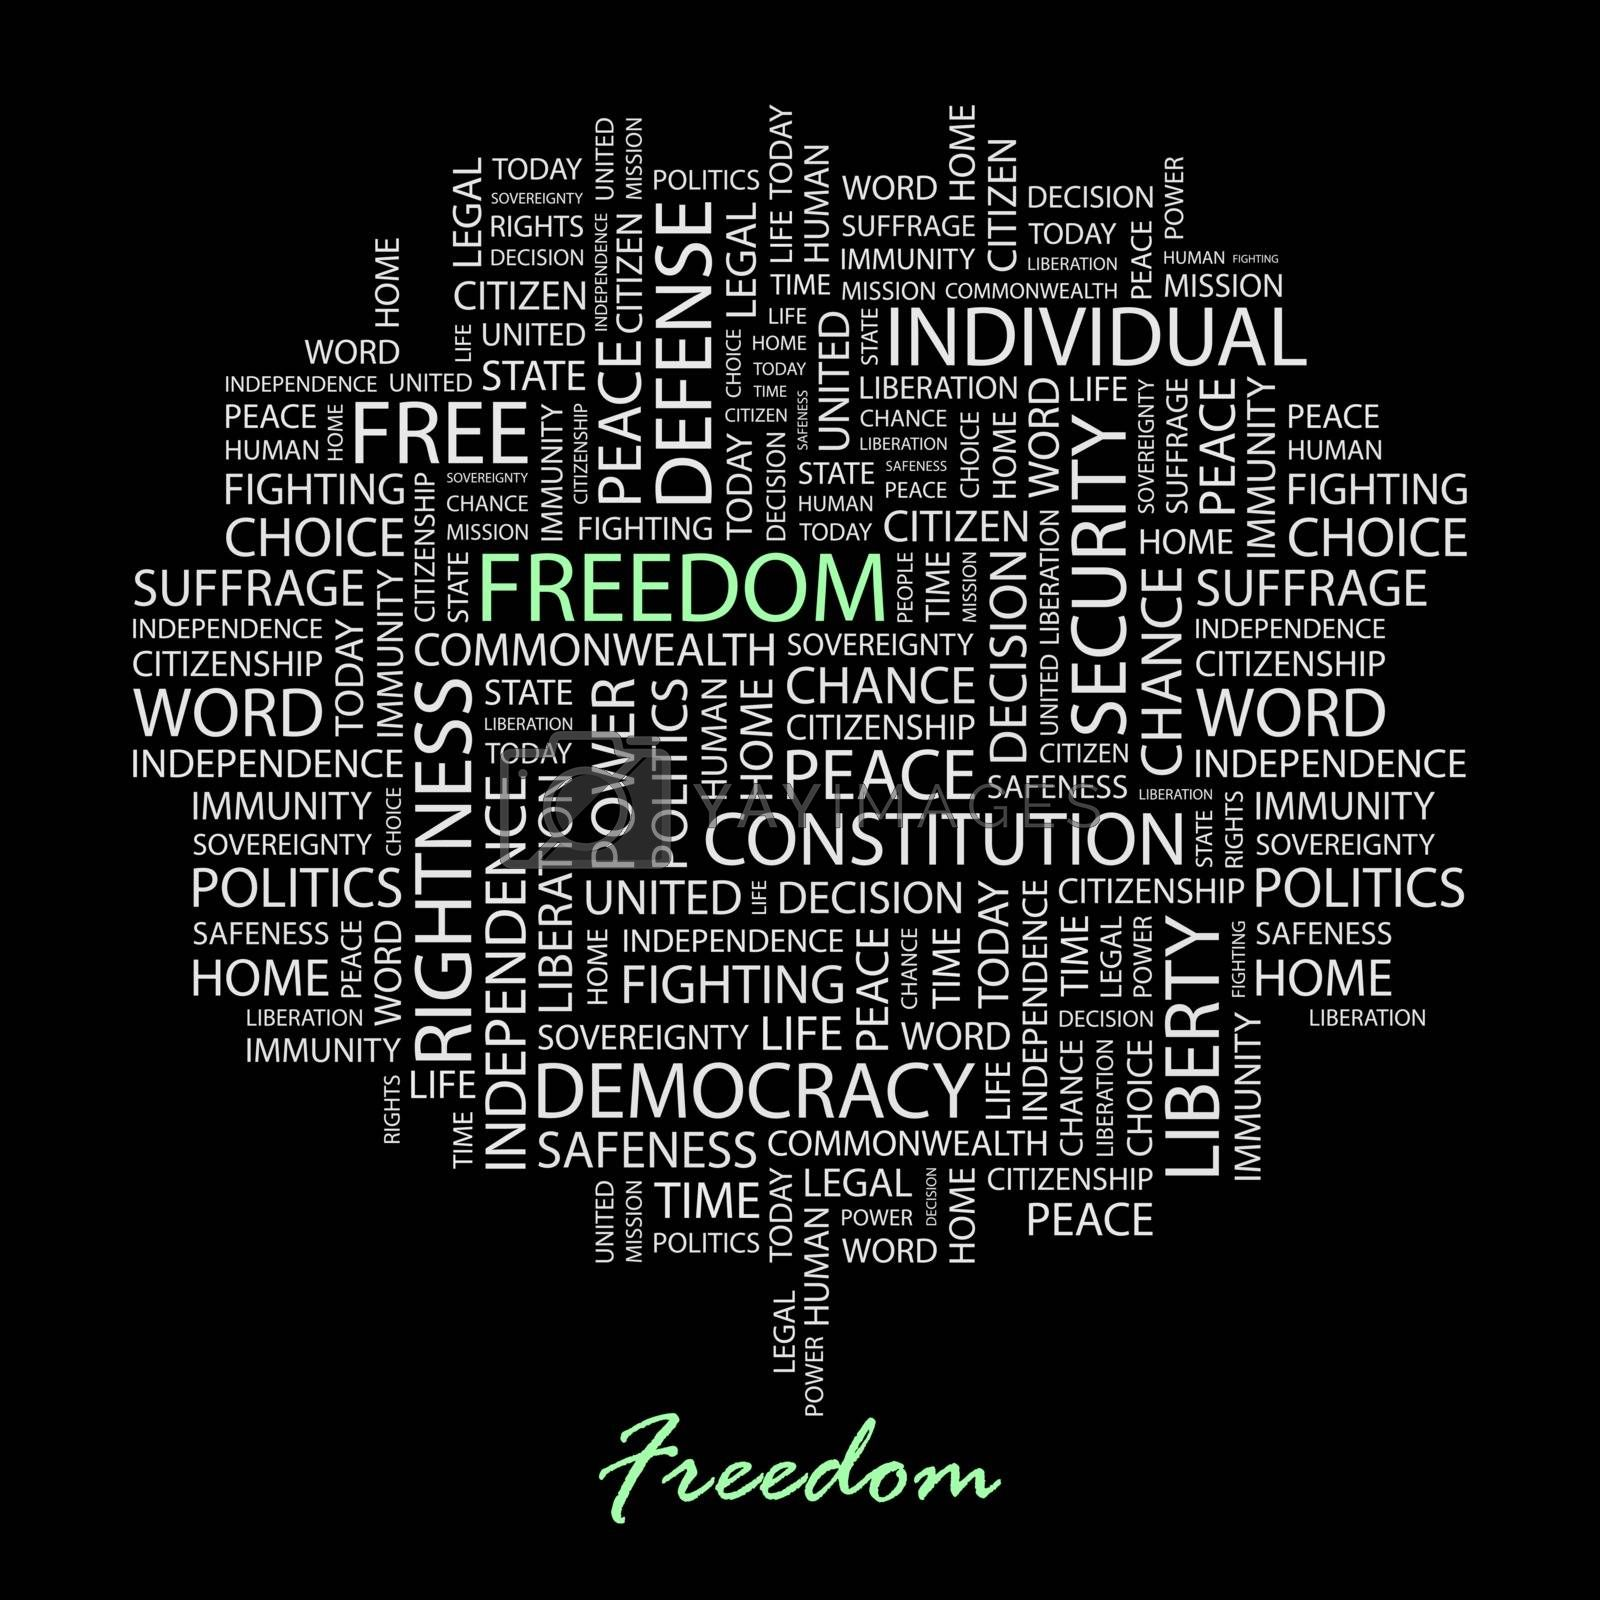 FREEDOM. Word cloud concept illustration. Wordcloud collage.